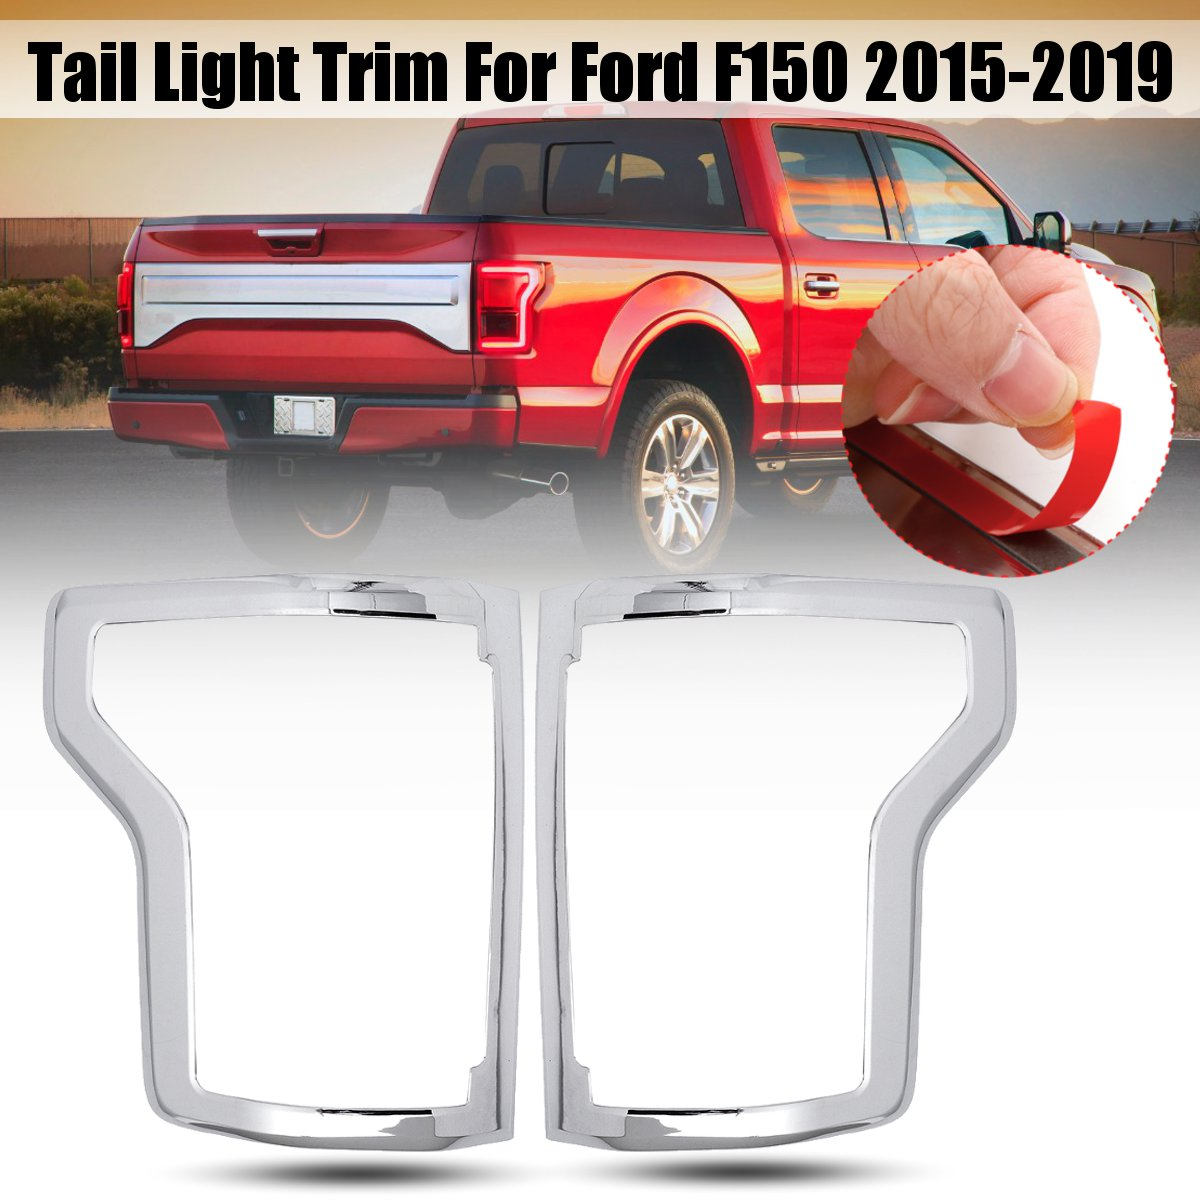 2016 F150 Tail Lights >> Pair Abs Chrome Rear Tail Light Lamp Frame Cover Trims For Ford F150